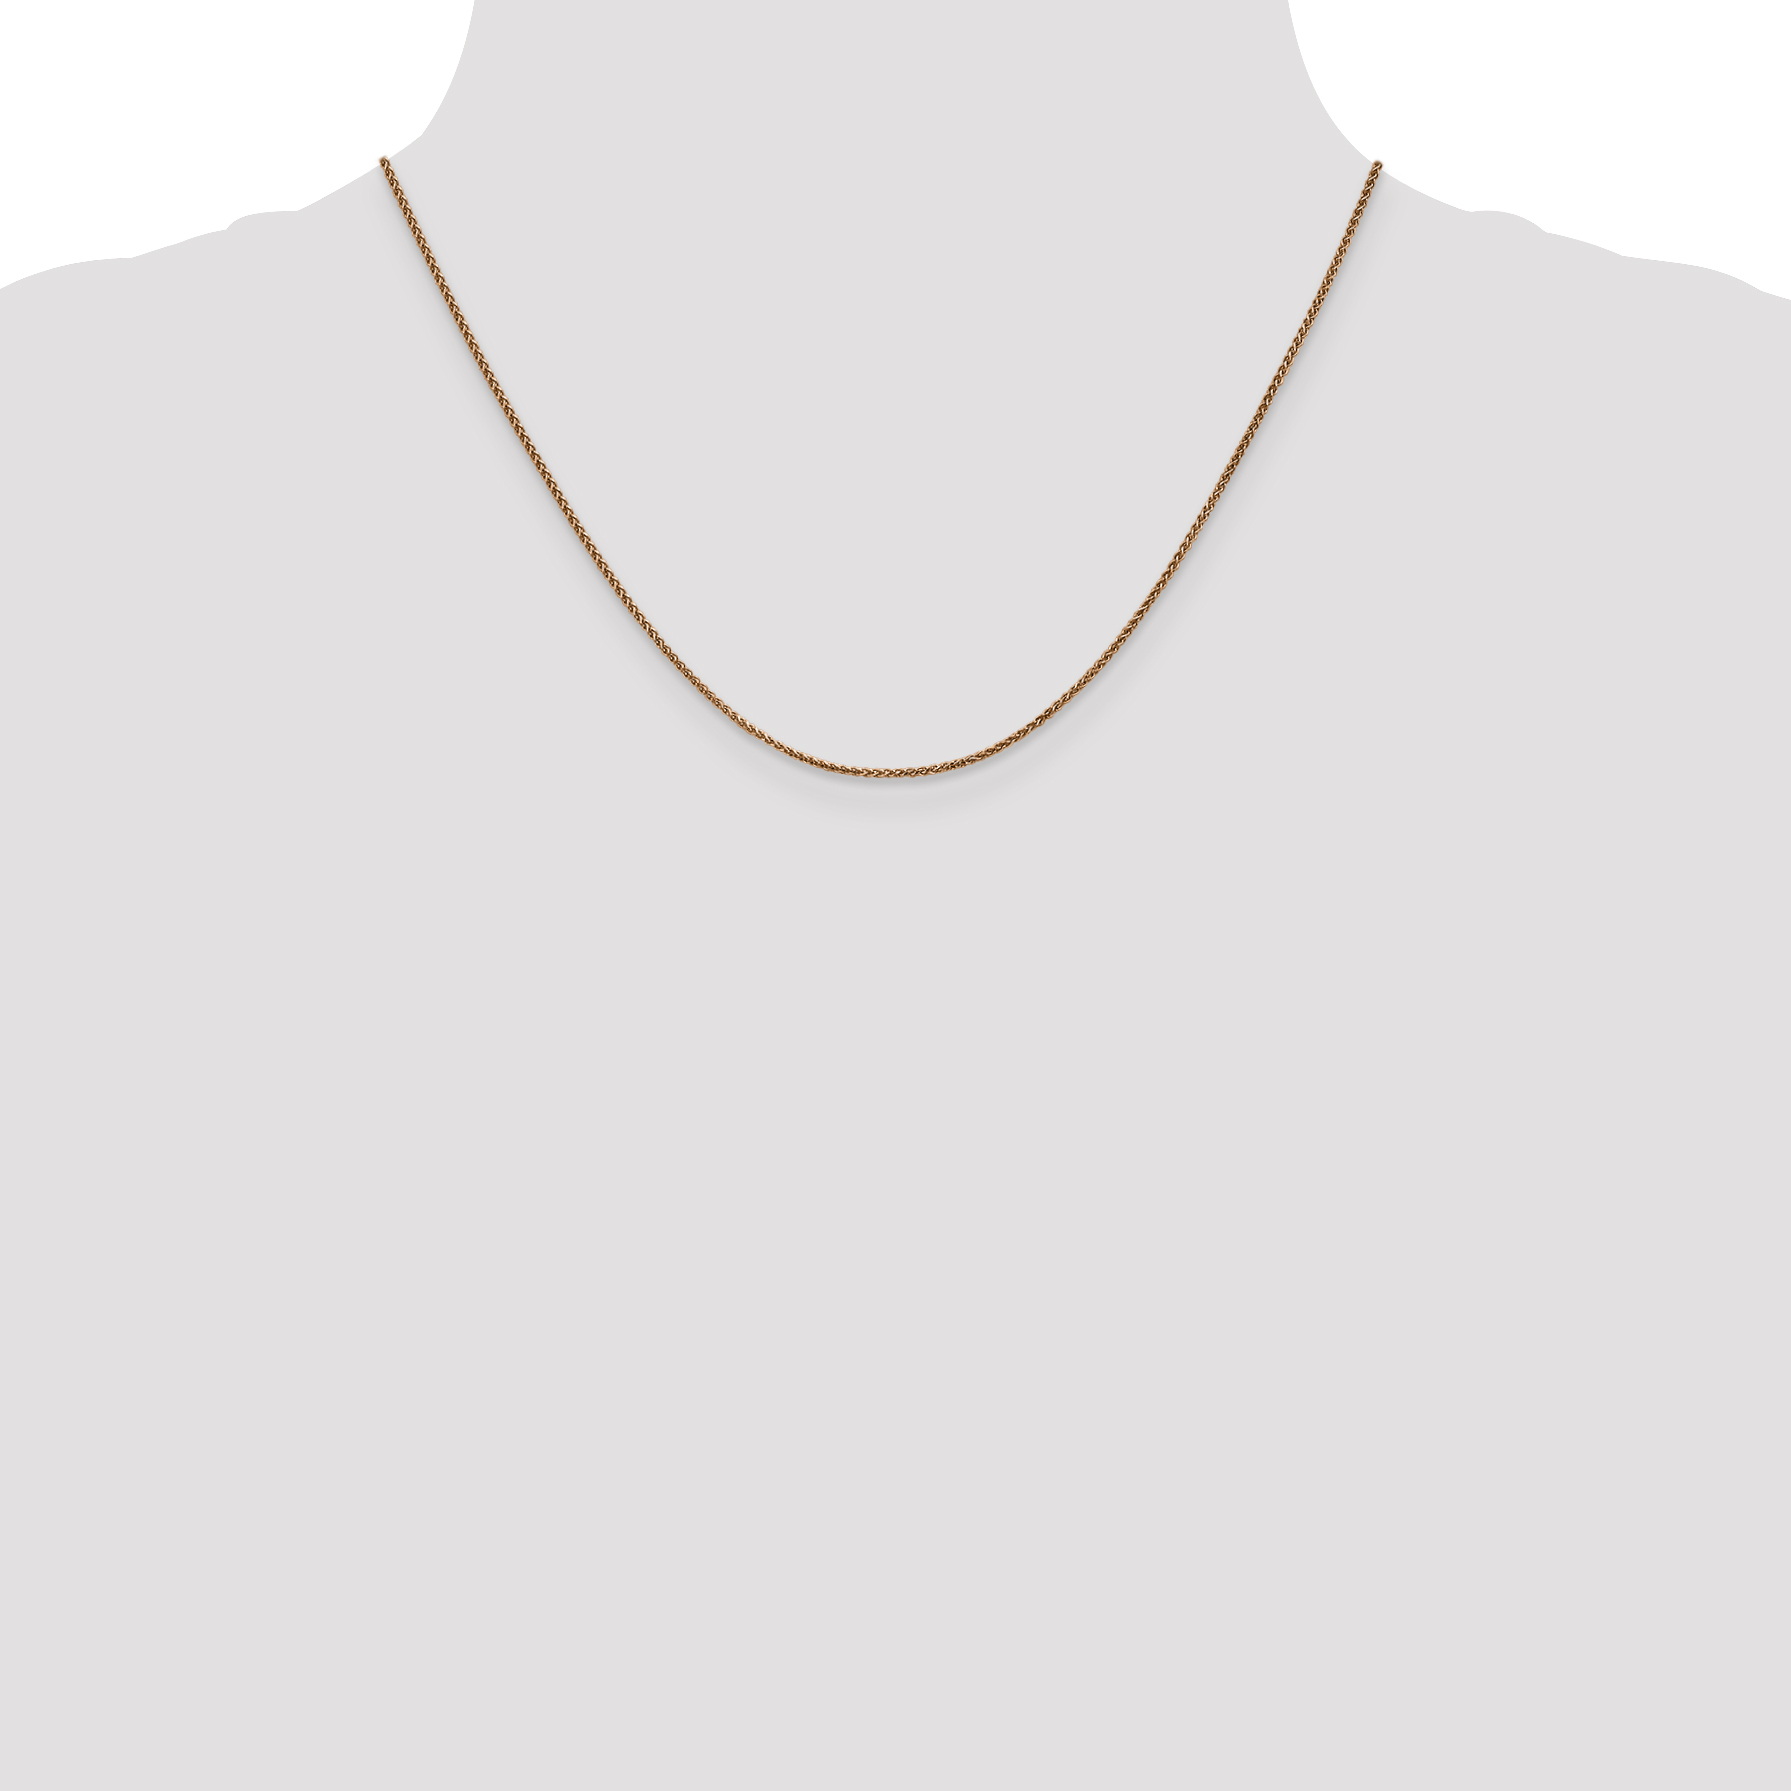 14k Rose Gold 1.2mm Spiga Chain Necklace 18 Inch Pendant Charm Wheat Spiga/wheat Fine Jewelry Gifts For Women For Her - image 1 of 5